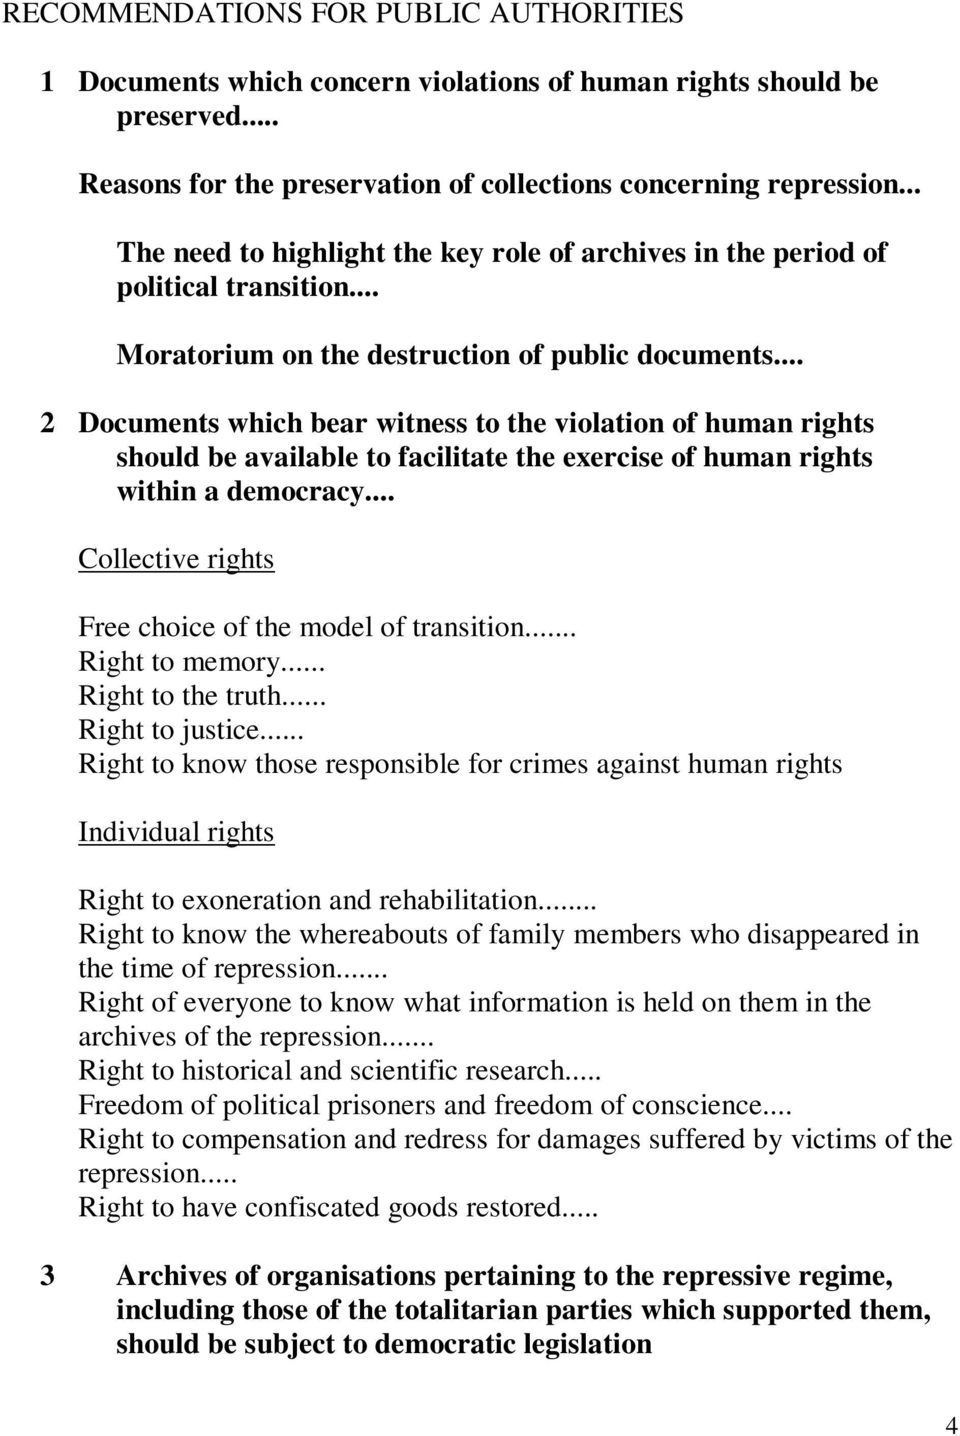 .. 2 Documents which bear witness to the violation of human rights should be available to facilitate the exercise of human rights within a democracy.